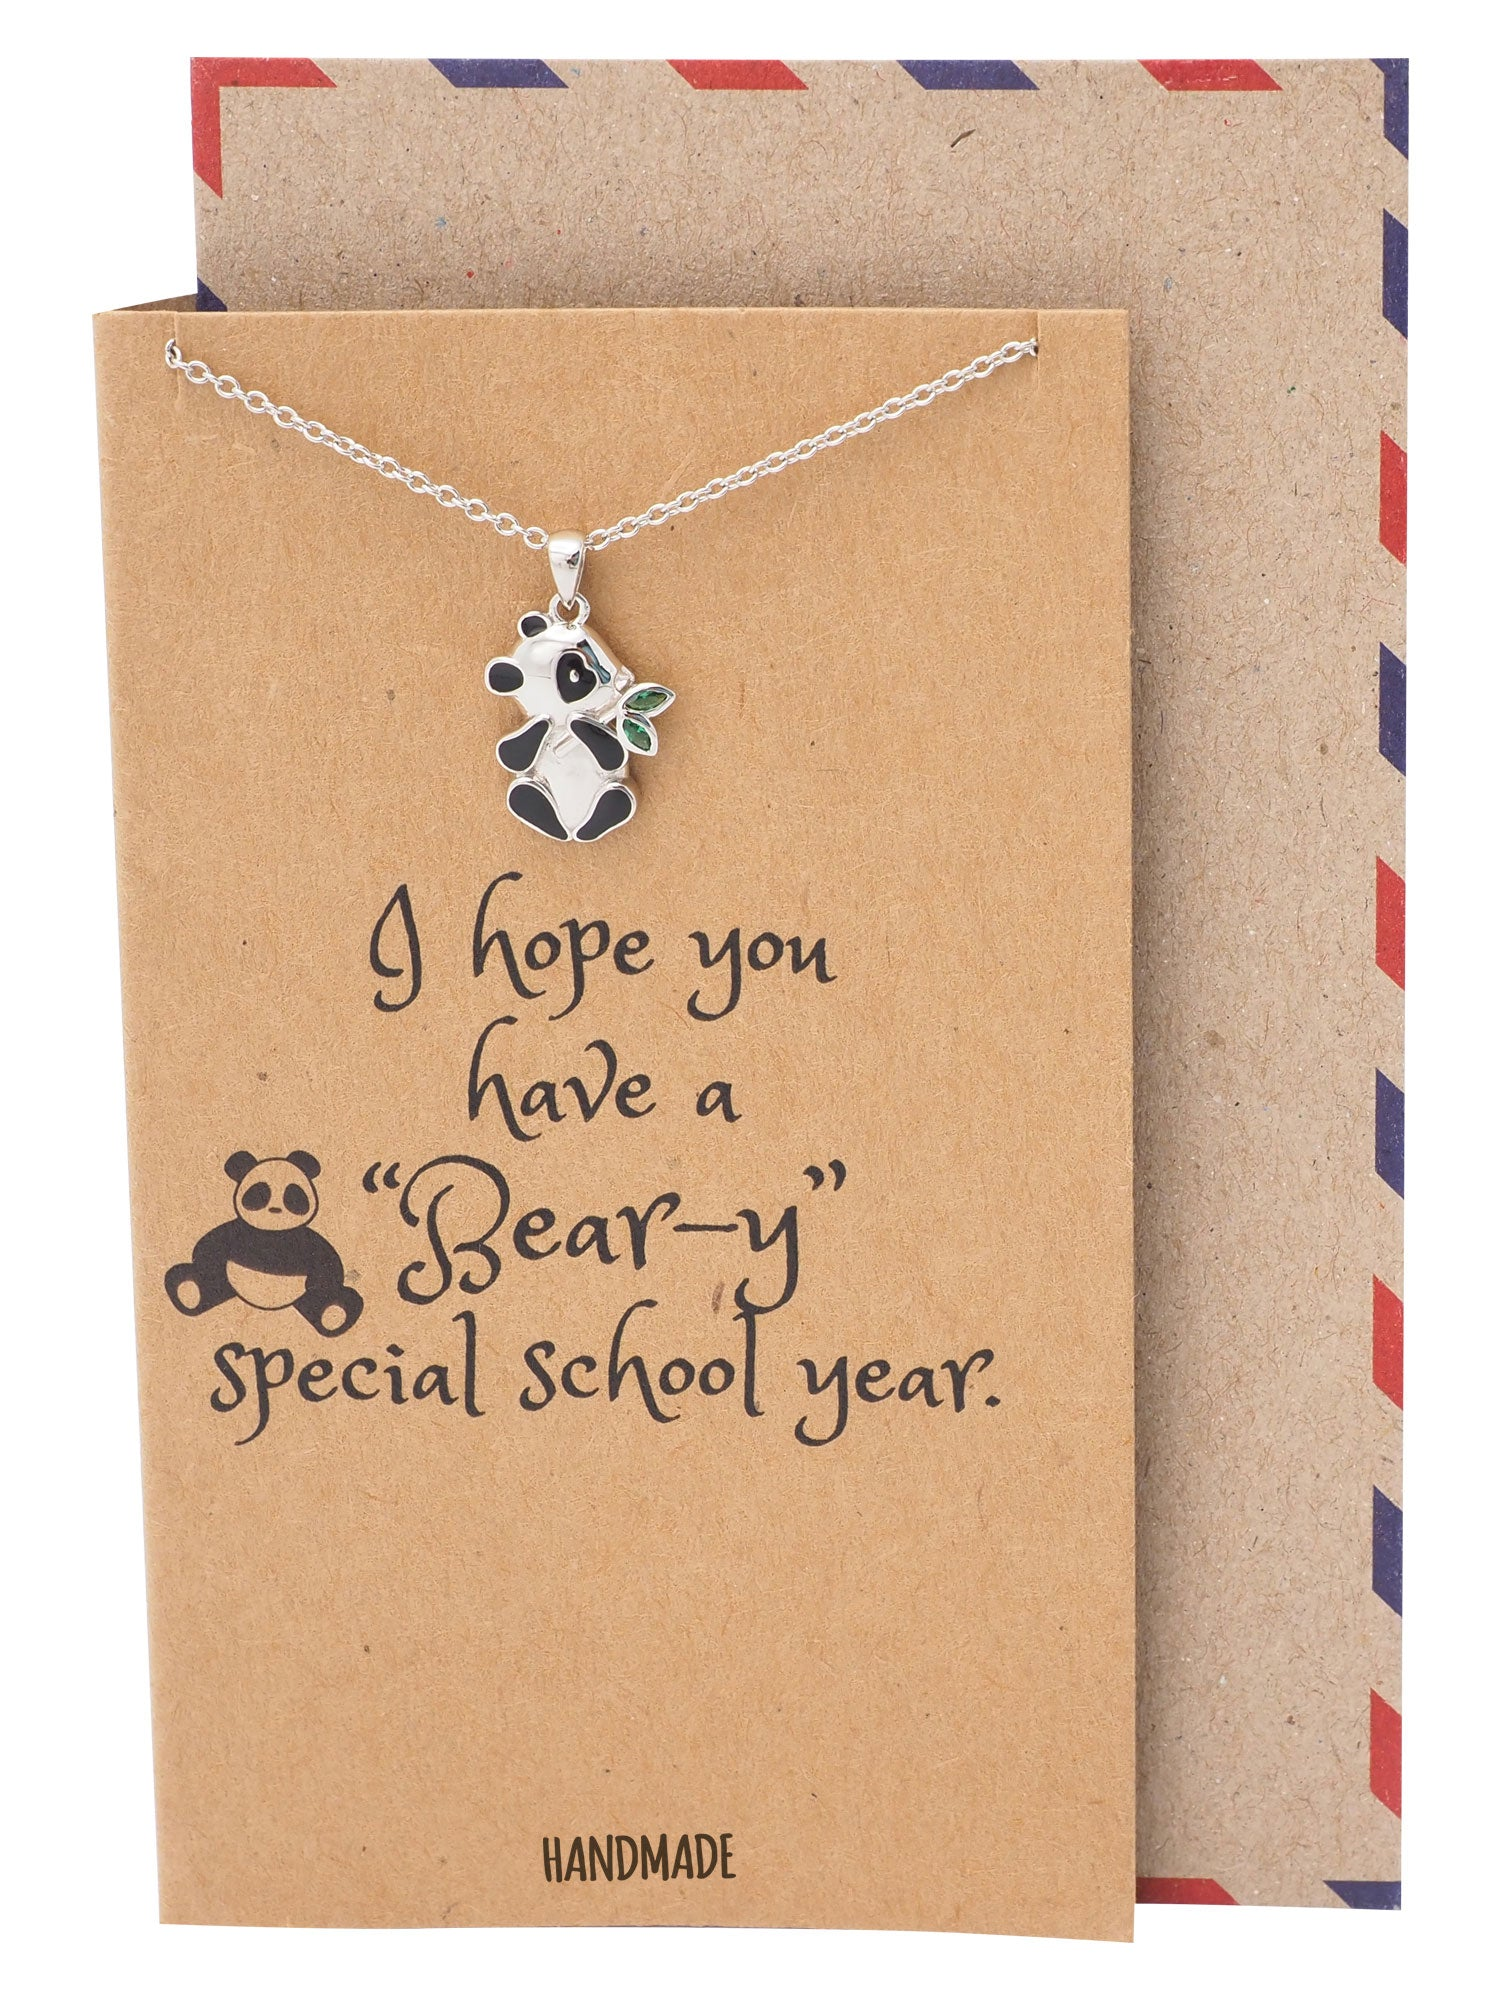 Anastasia Panda Pendant Necklace, Gifts for Women, Inspiring Necklace for Teens with Greeting Card